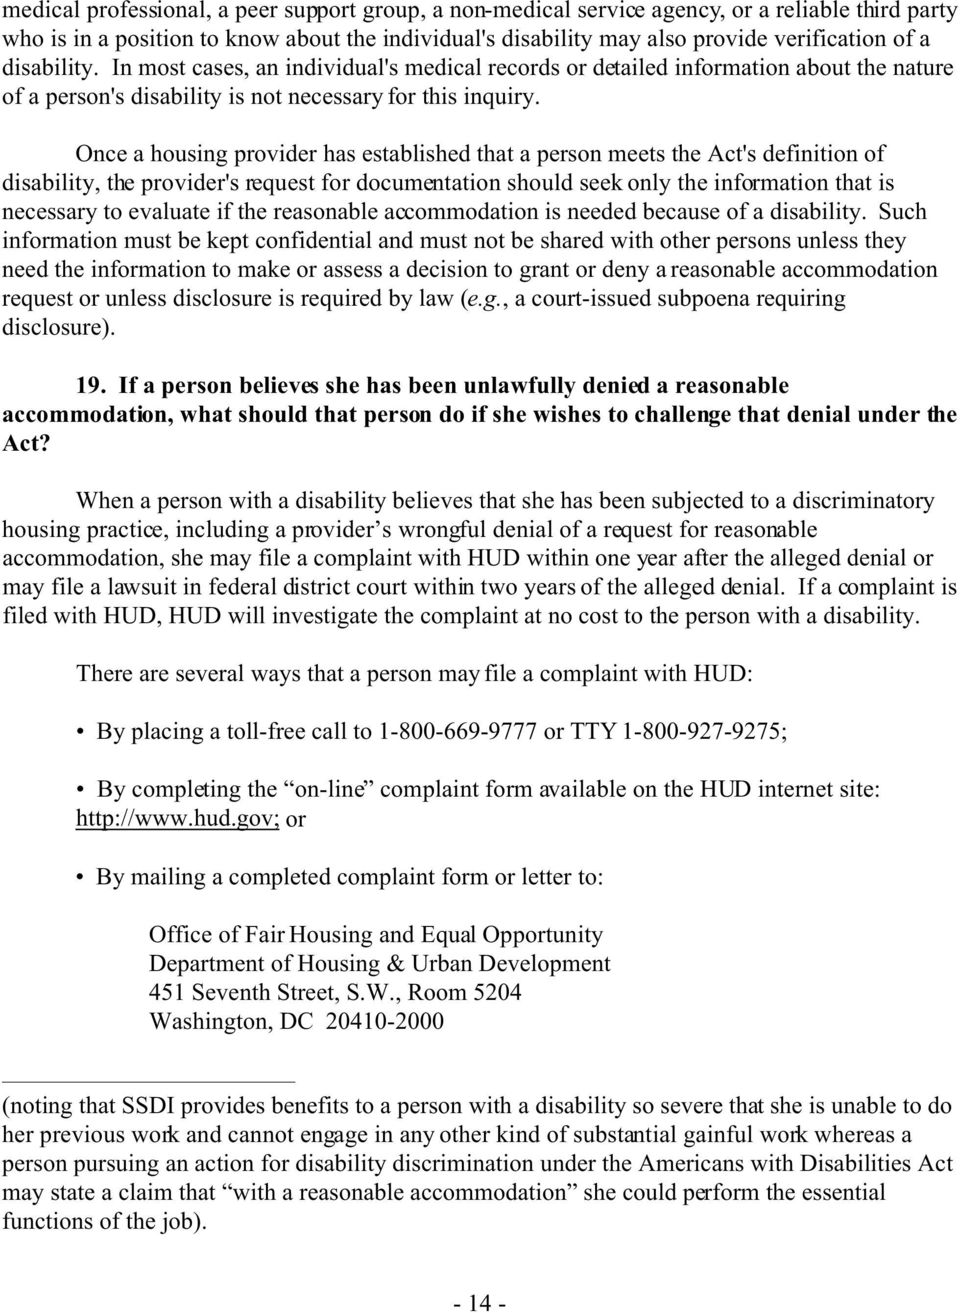 Once a housing provider has established that a person meets the Act's definition of disability, the provider's request for documentation should seek only the information that is necessary to evaluate